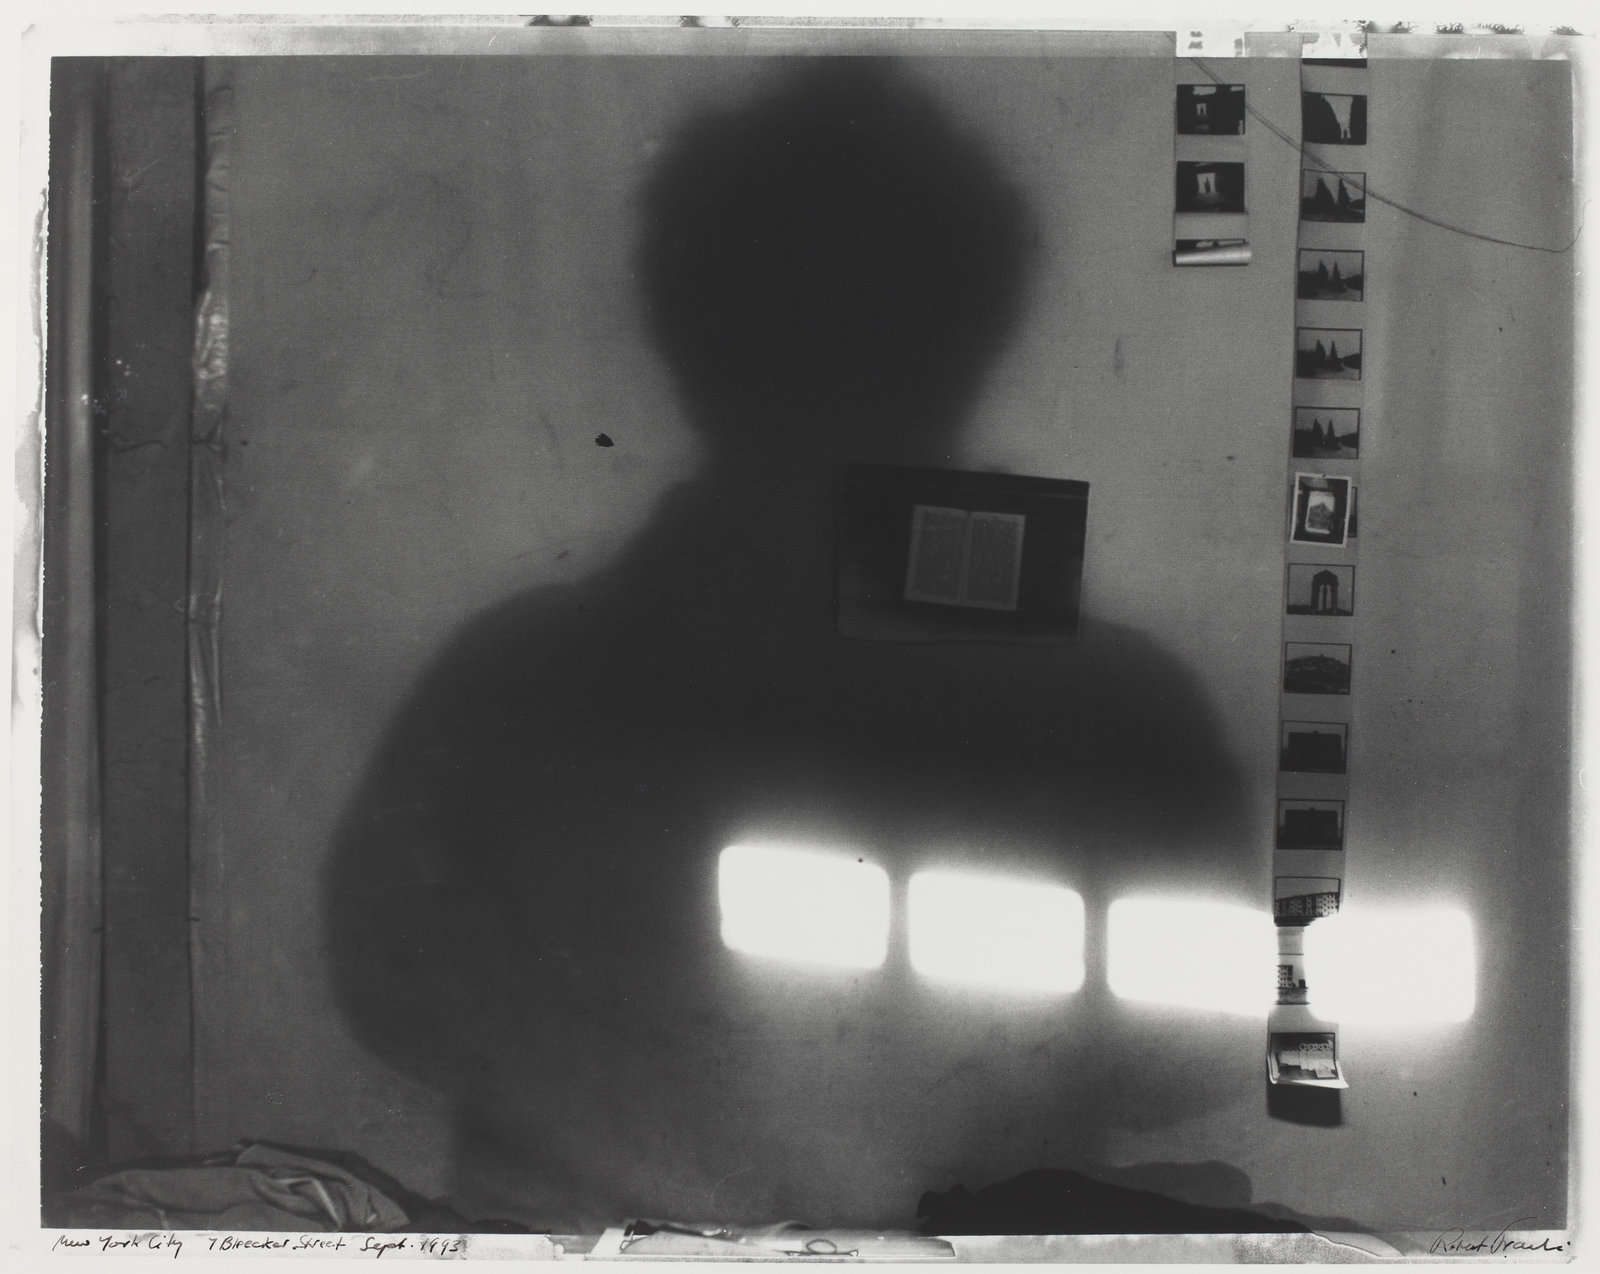 New York City, 7 Bleecker Street, 1993 . ©Robert Frank/National Gallery of Art, Washington, Robert Frank Collection